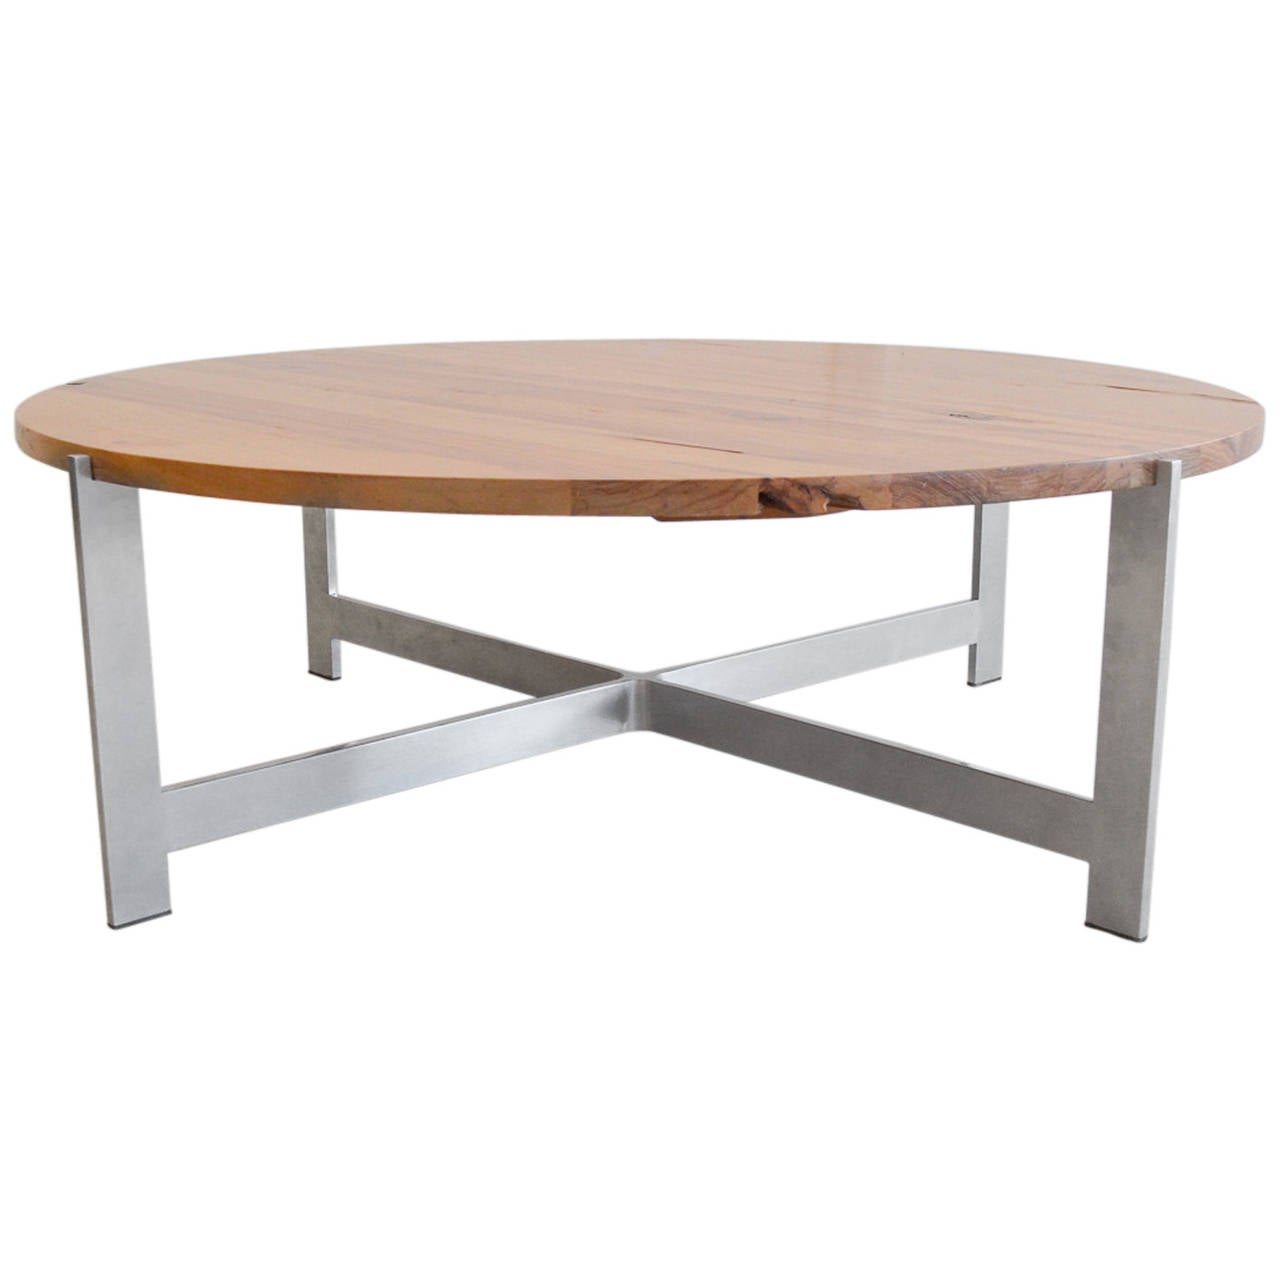 Round Wood Coffee Table With Aluminum X Base At 1stdibs